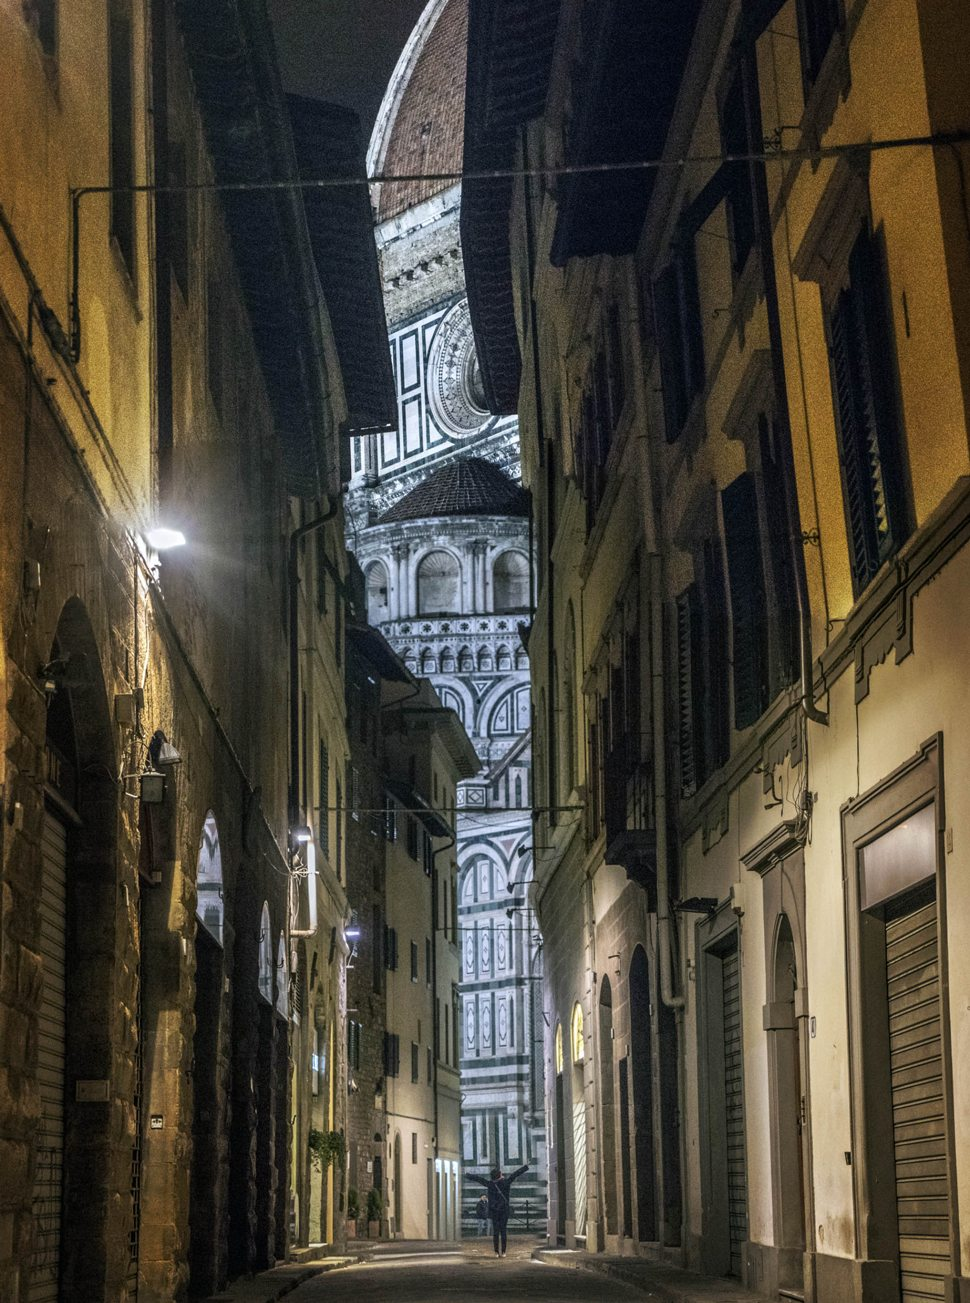 The narrow streets of Florence